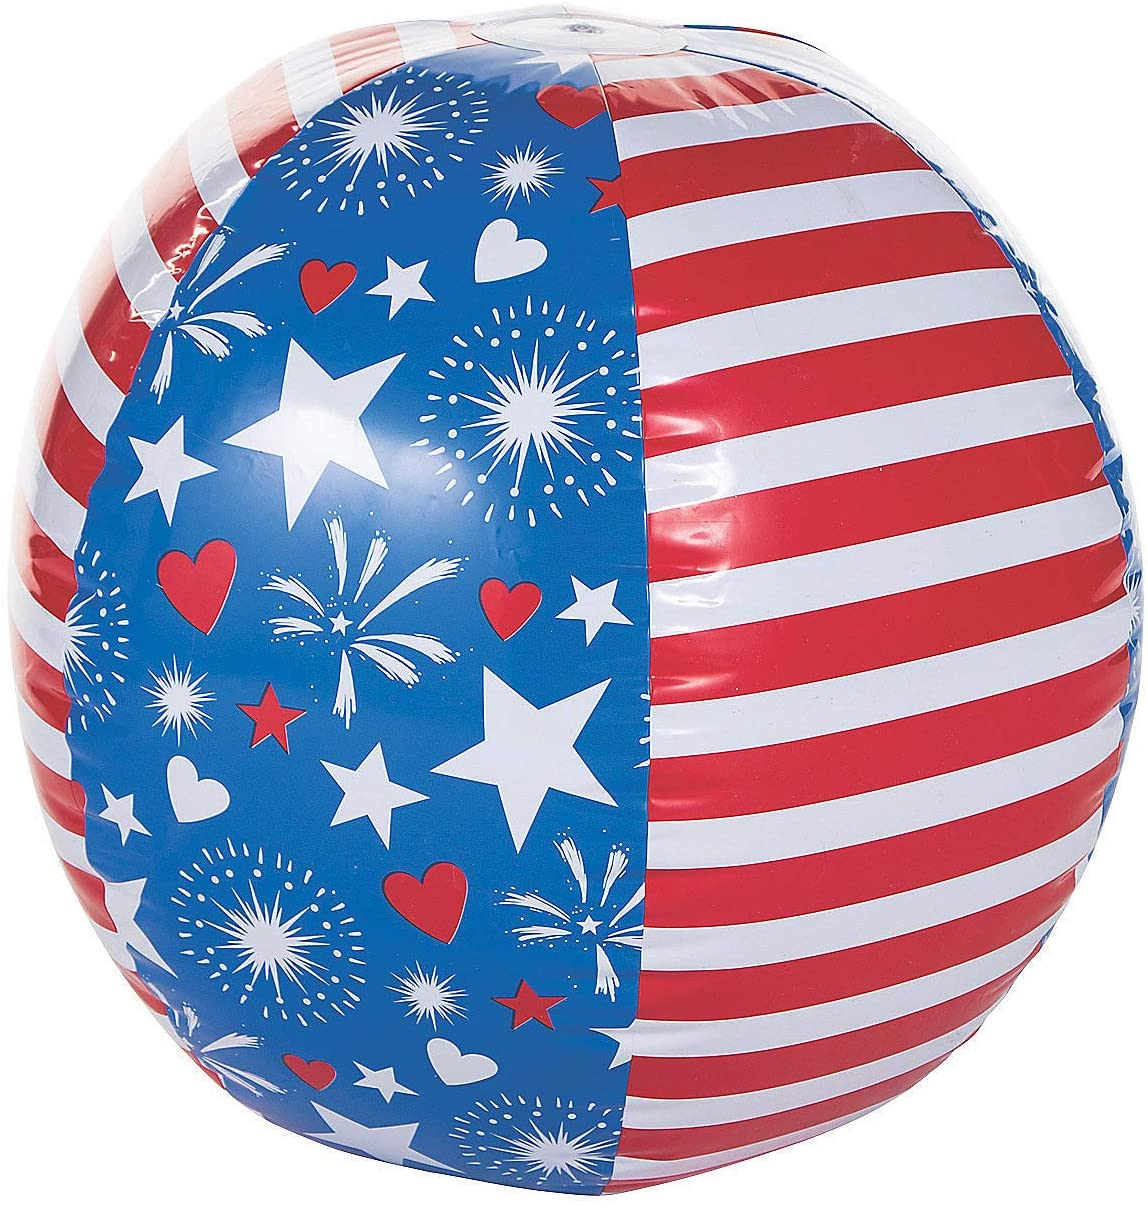 Fun Express - Patriotic Giant Beach Ball for Fourth of July - Toys - Inflates - Beach Balls - Fourth of July - 1 Piece